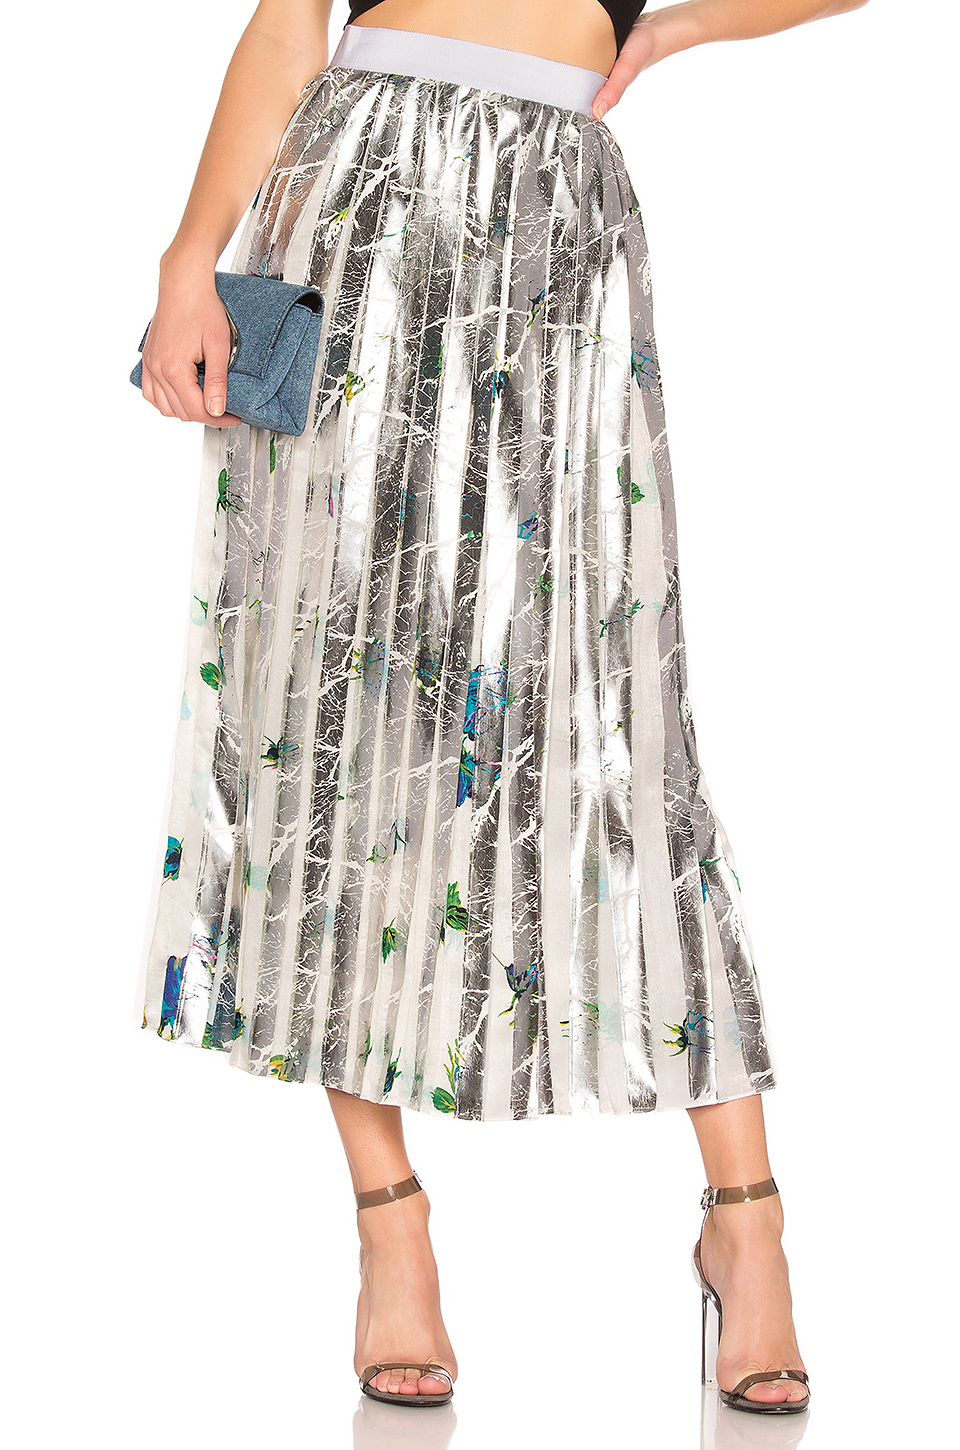 432671ae9cd4 Buy Original MSGM Floral Pleated Skirt at Indonesia | BOBOBOBO